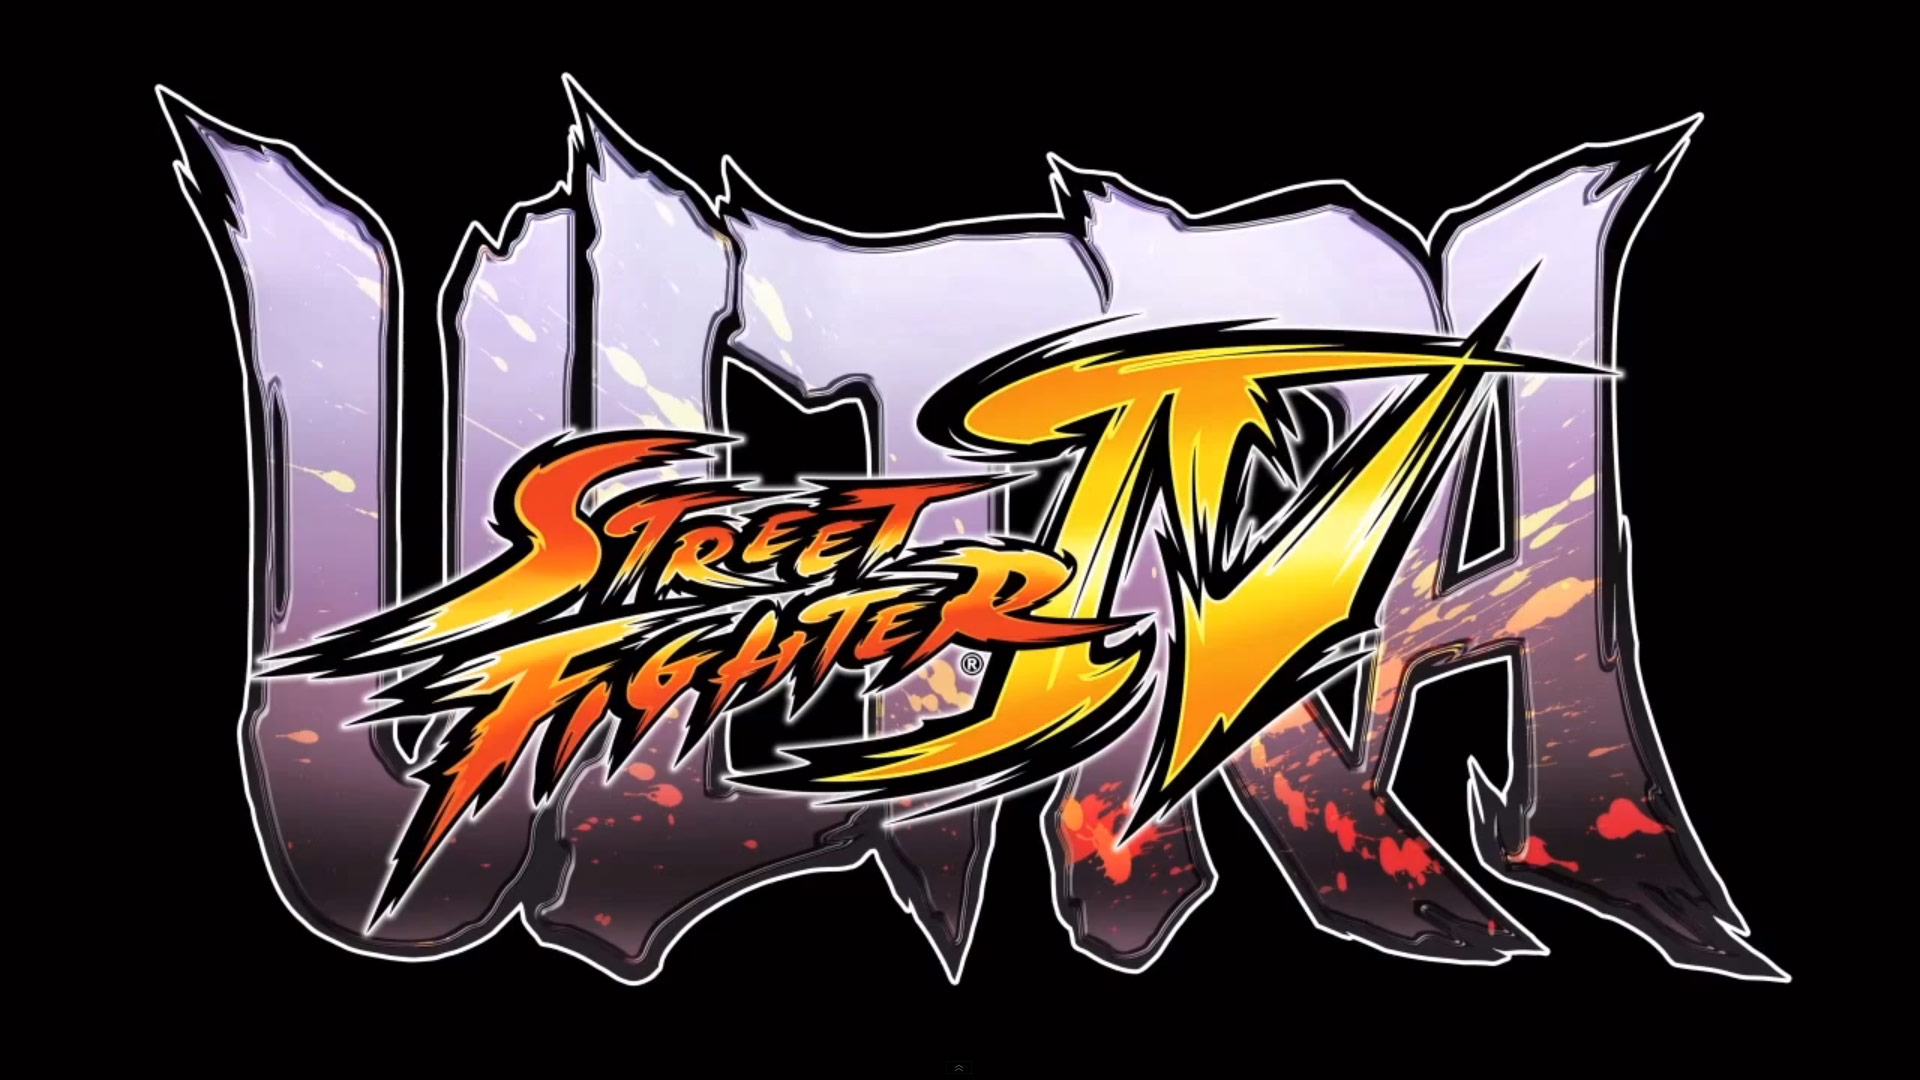 What's new with Ultra Street Fighter 4?